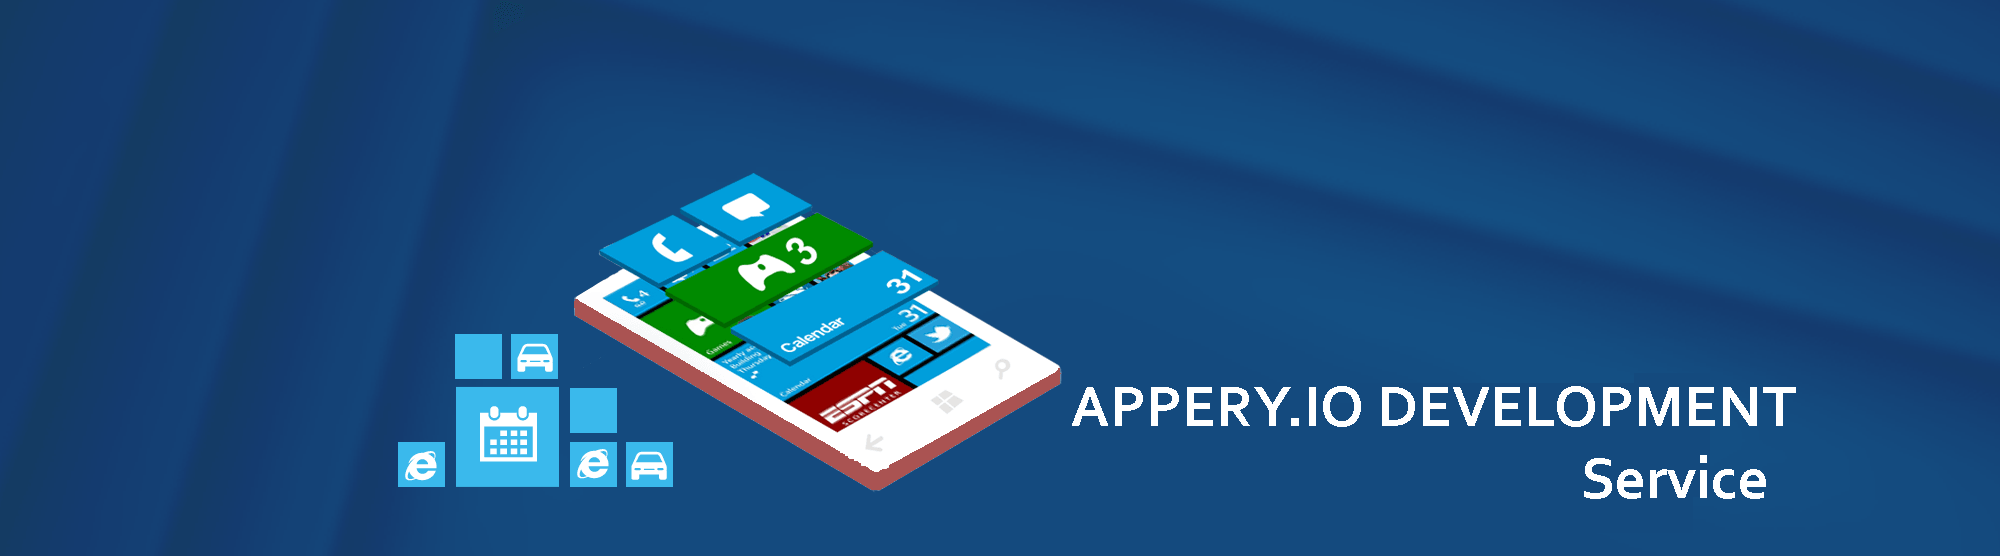 appery.io-development-services